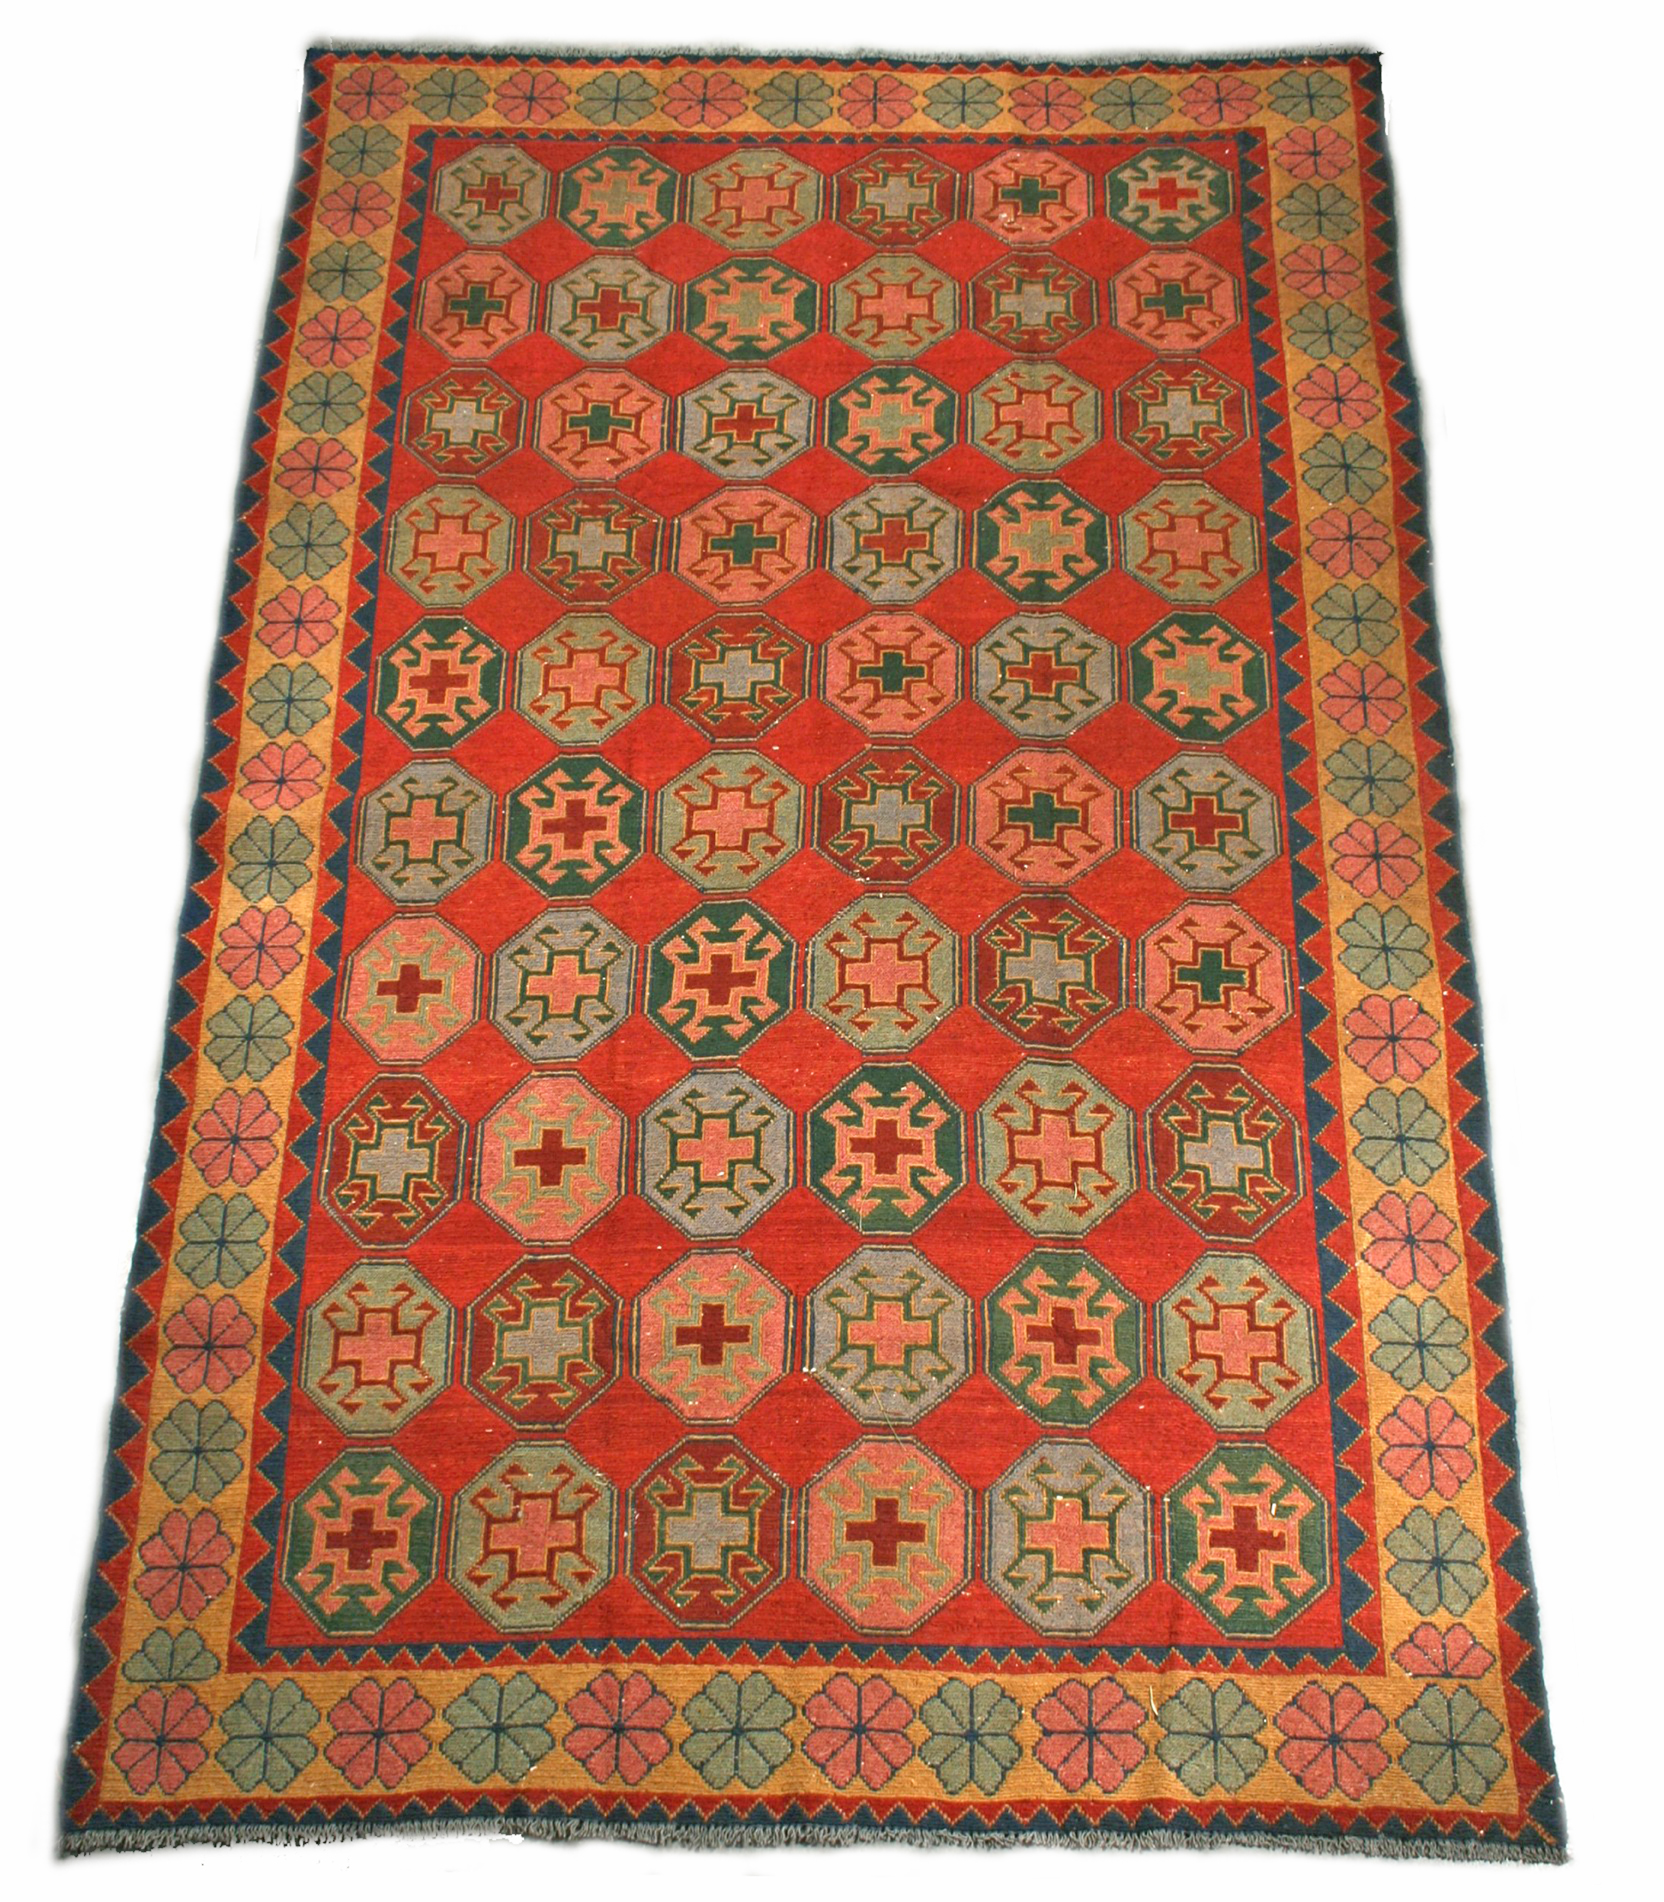 Antique Geometric Soumak Woven Rug